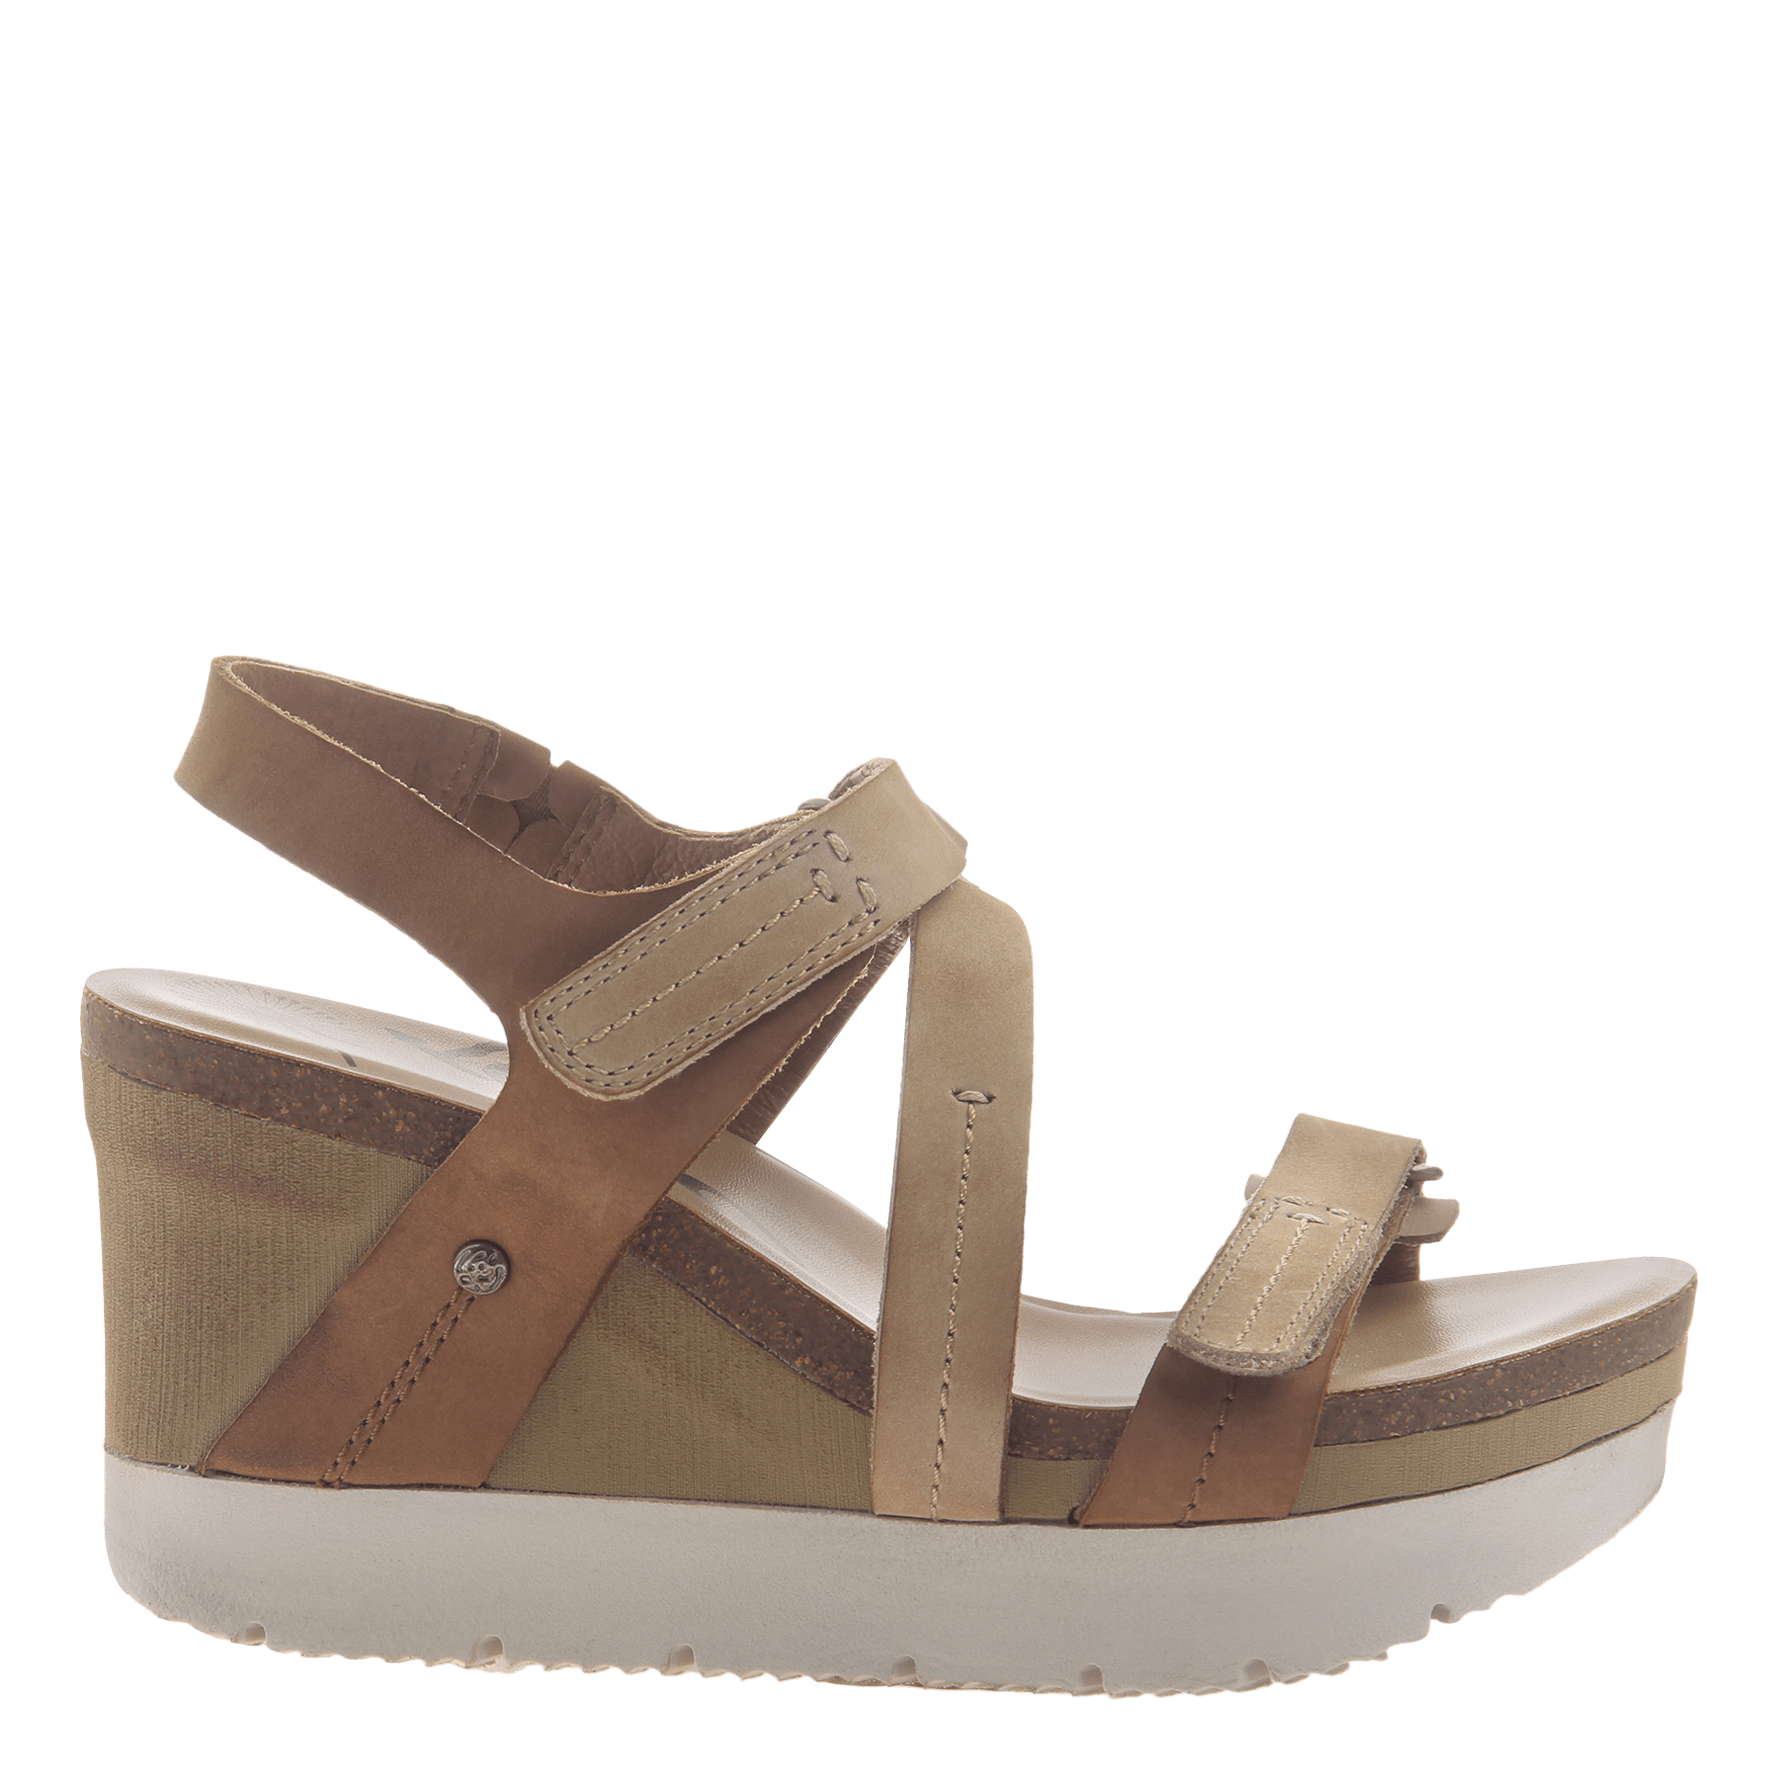 e04e064913b Womens wedge sandals wavey in Mid Brown side view